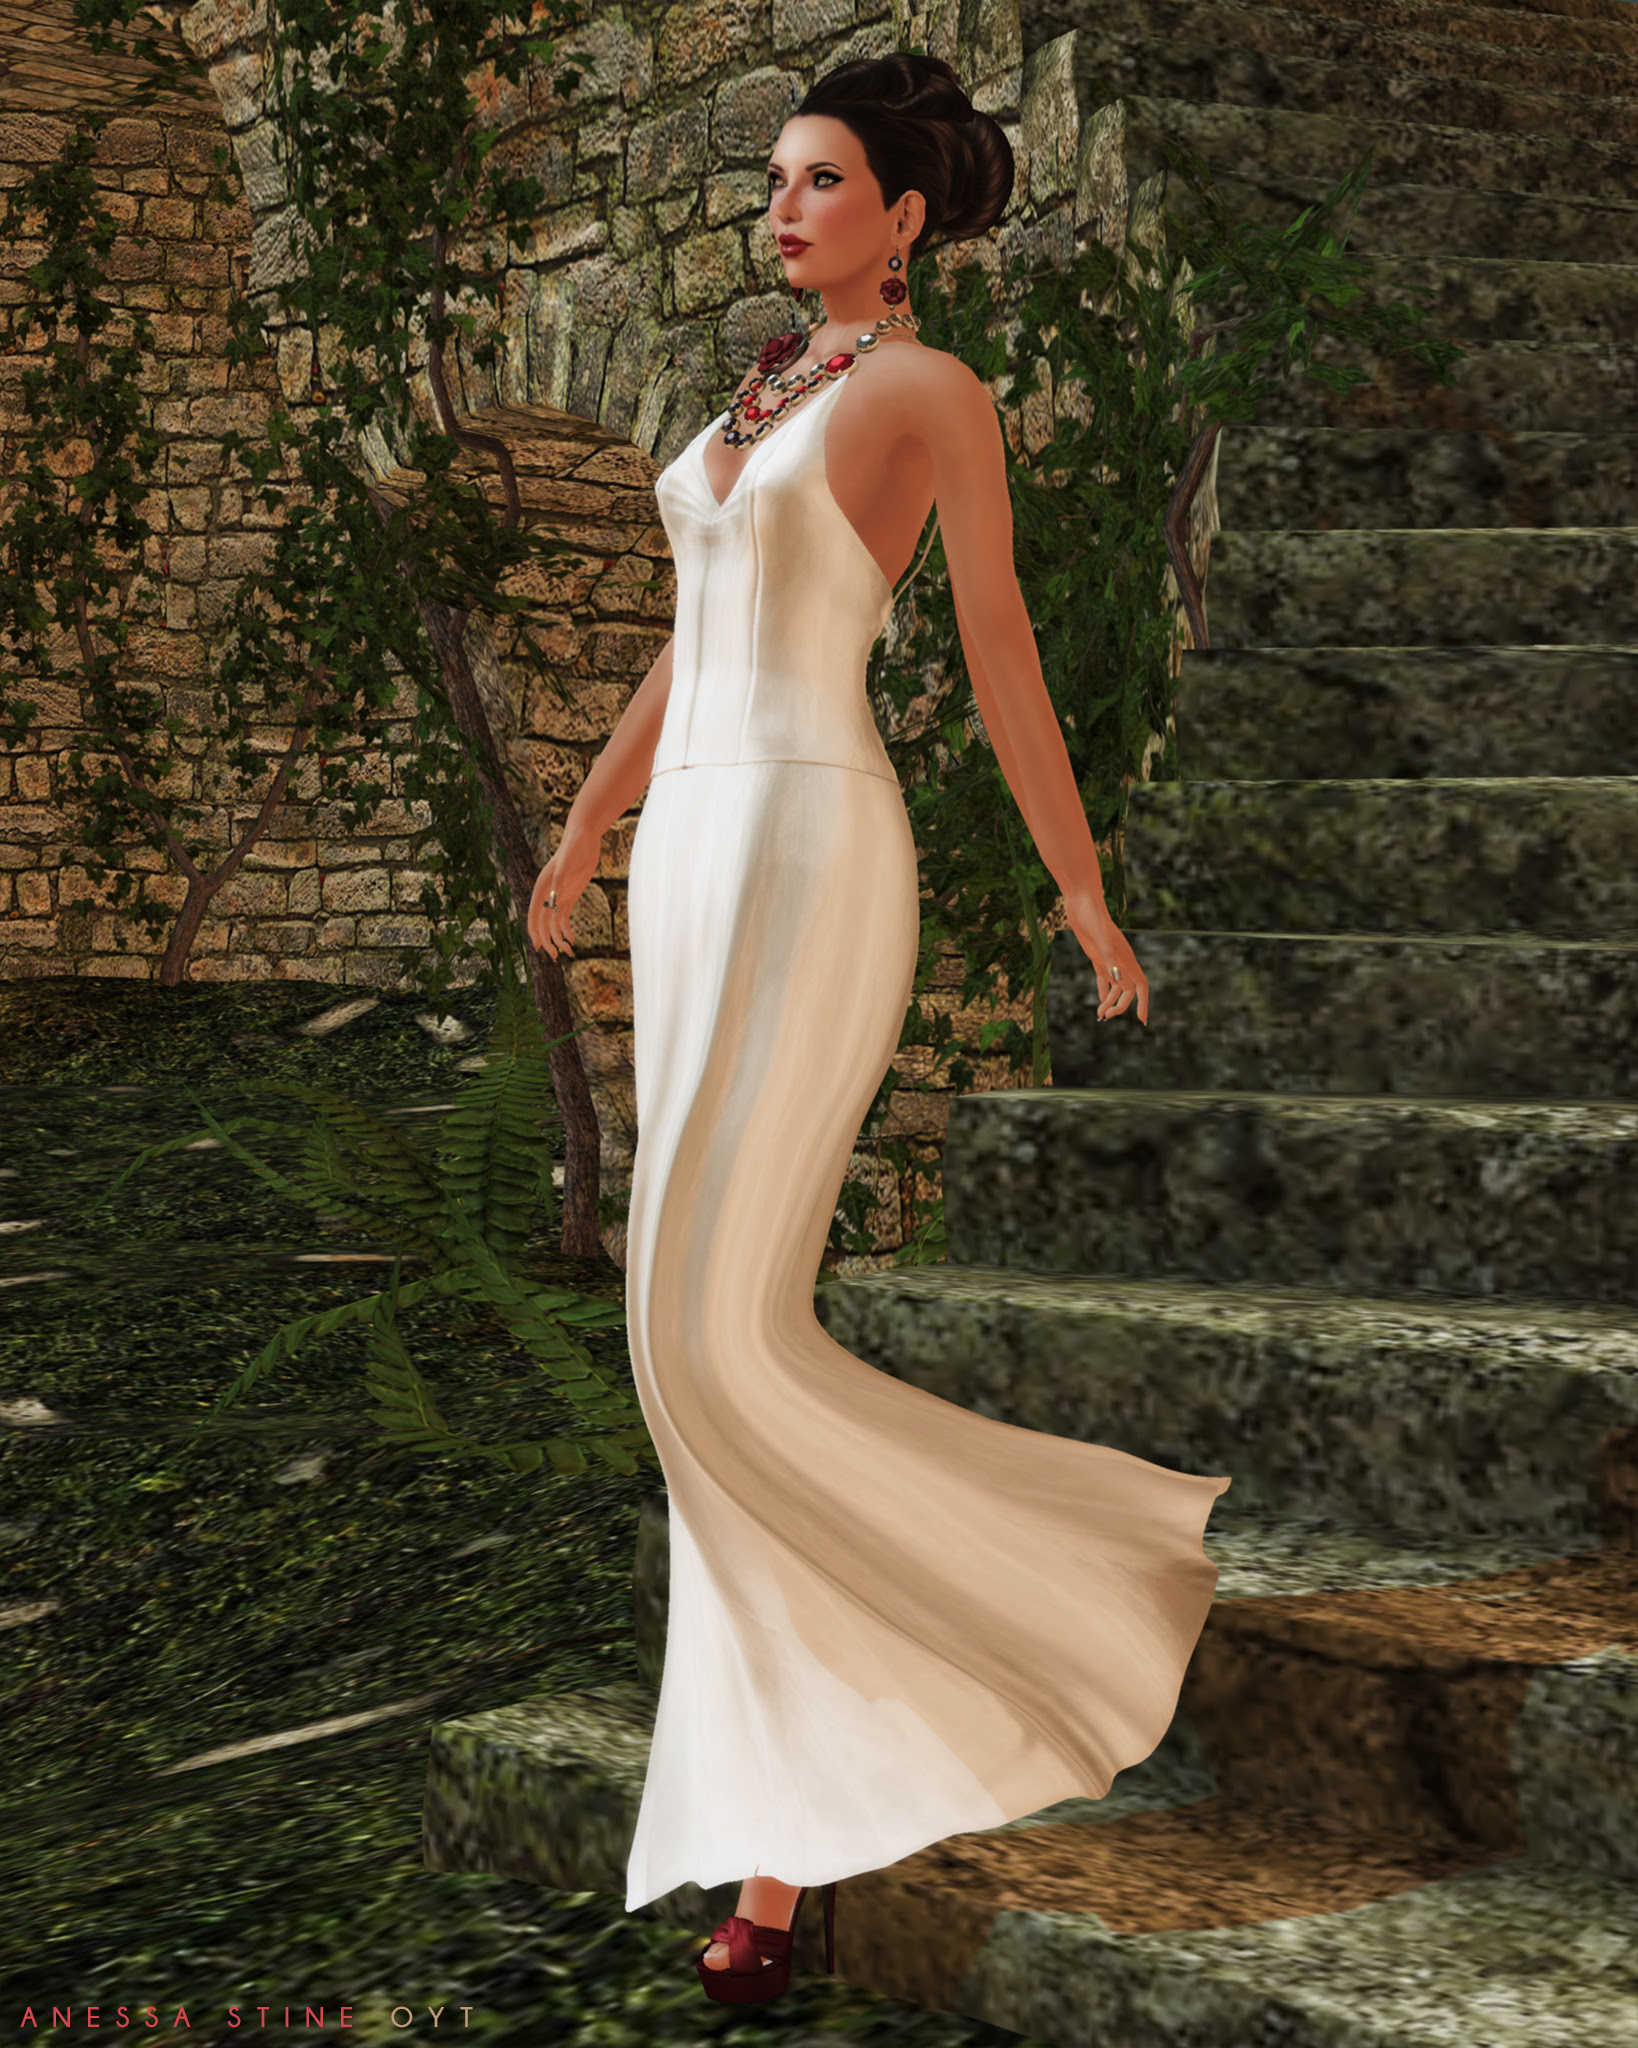 On Your Toes Blog: Love Among The Ruins